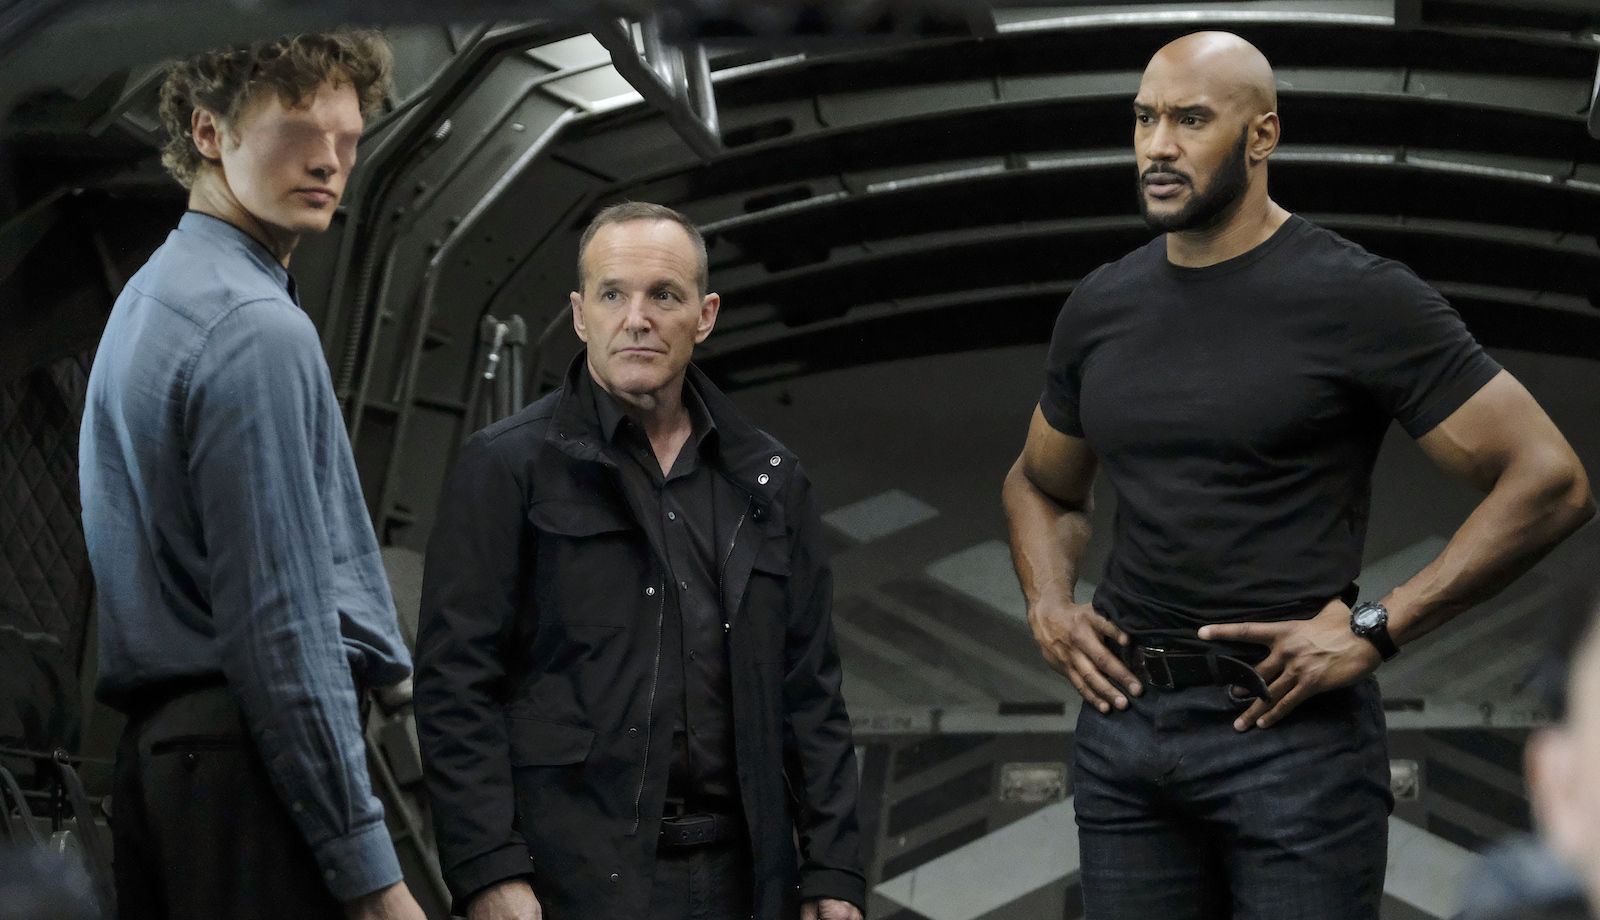 Agents of SHIELD Season 7 Episode 10 Review: Stolen | Den of Geek